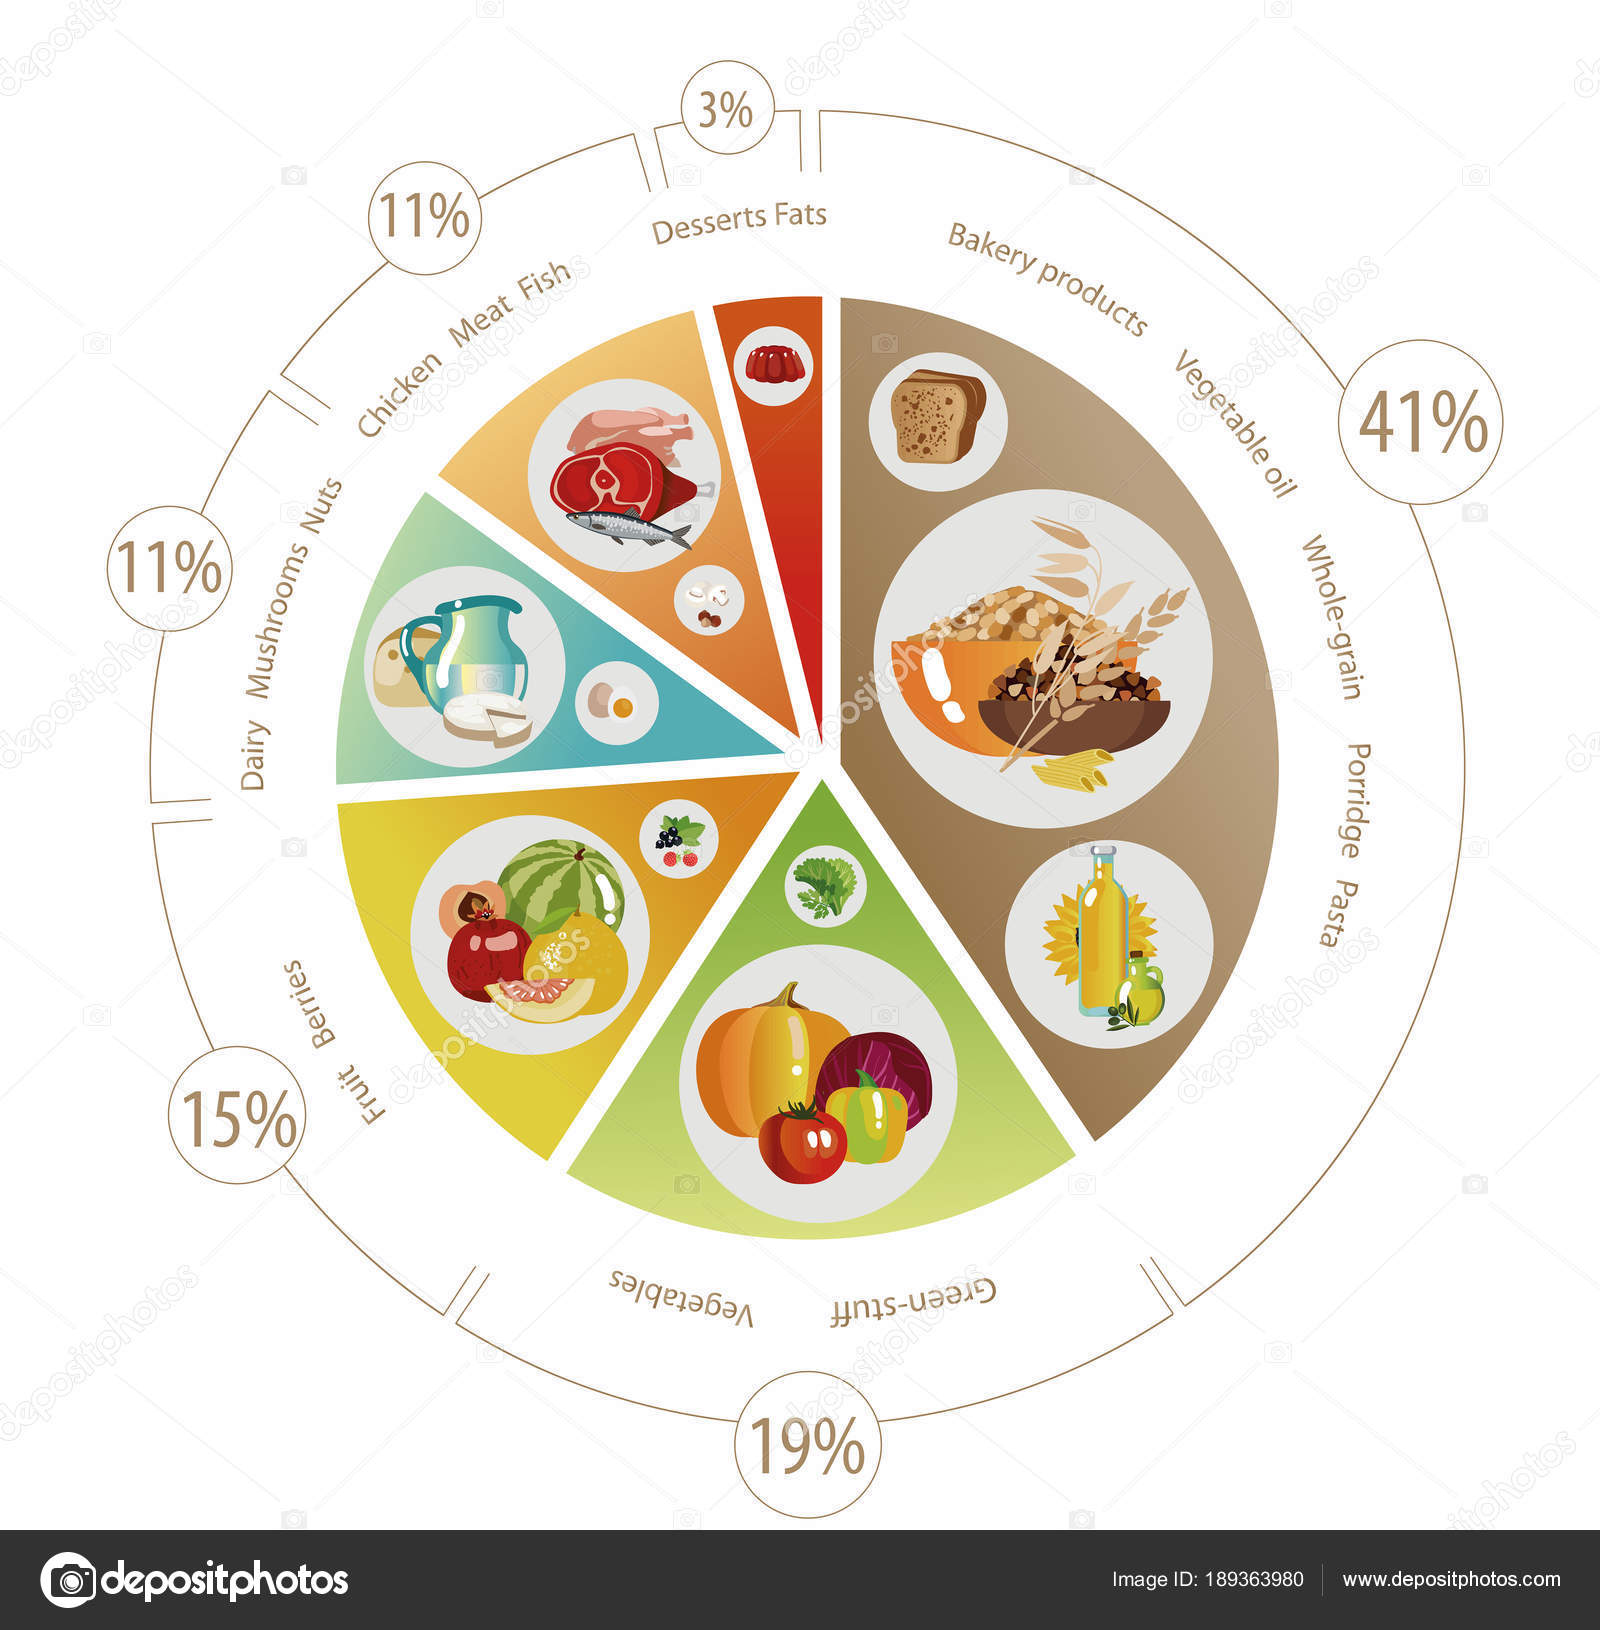 Food pyramid of pie chart stock vector alfaolga 189363980 food pyramid in the form of a pie chart recommendation for a healthy diet norms of products for the daily diet vector by alfaolga nvjuhfo Choice Image